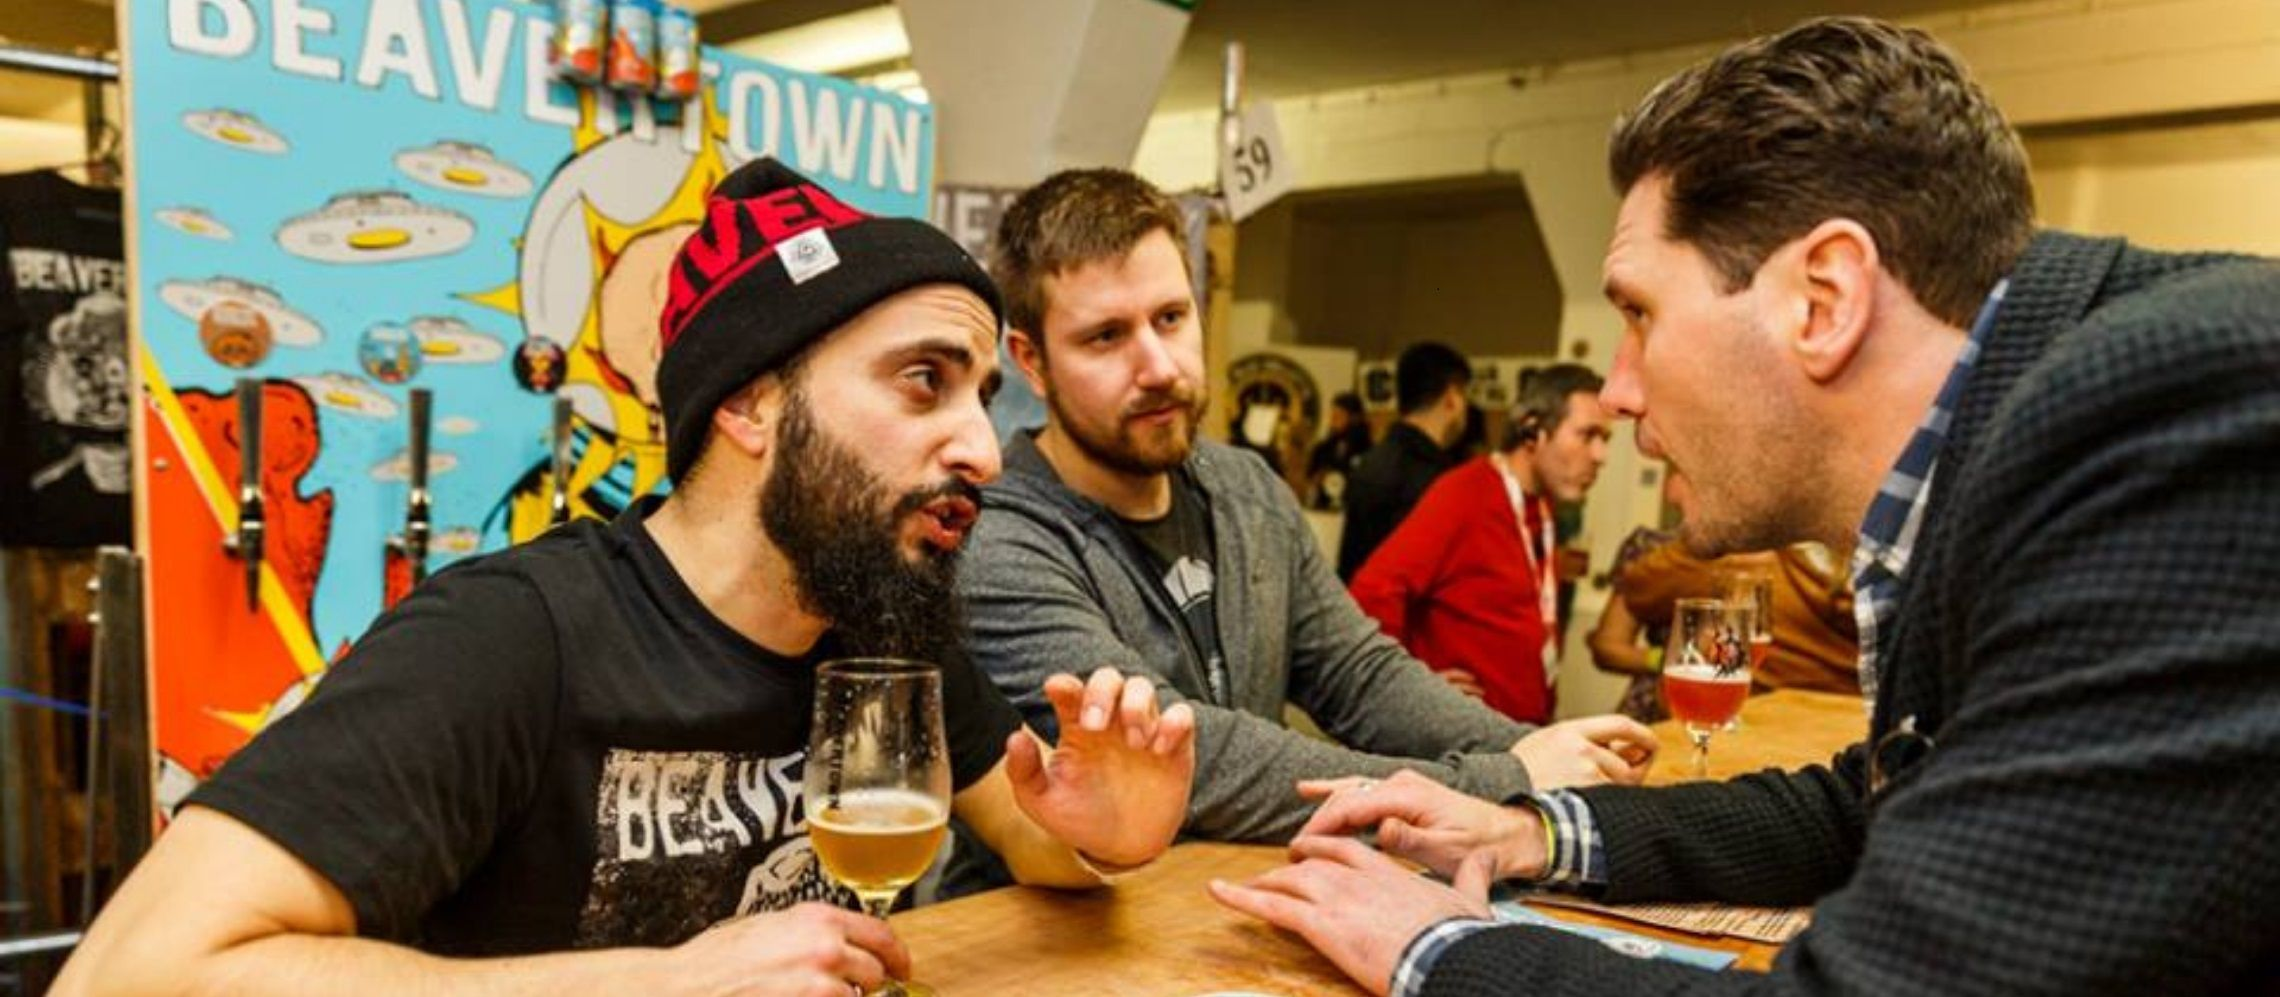 Photo for: How Craft Brewers Are Ready And Primed For Their Best Years Ahead